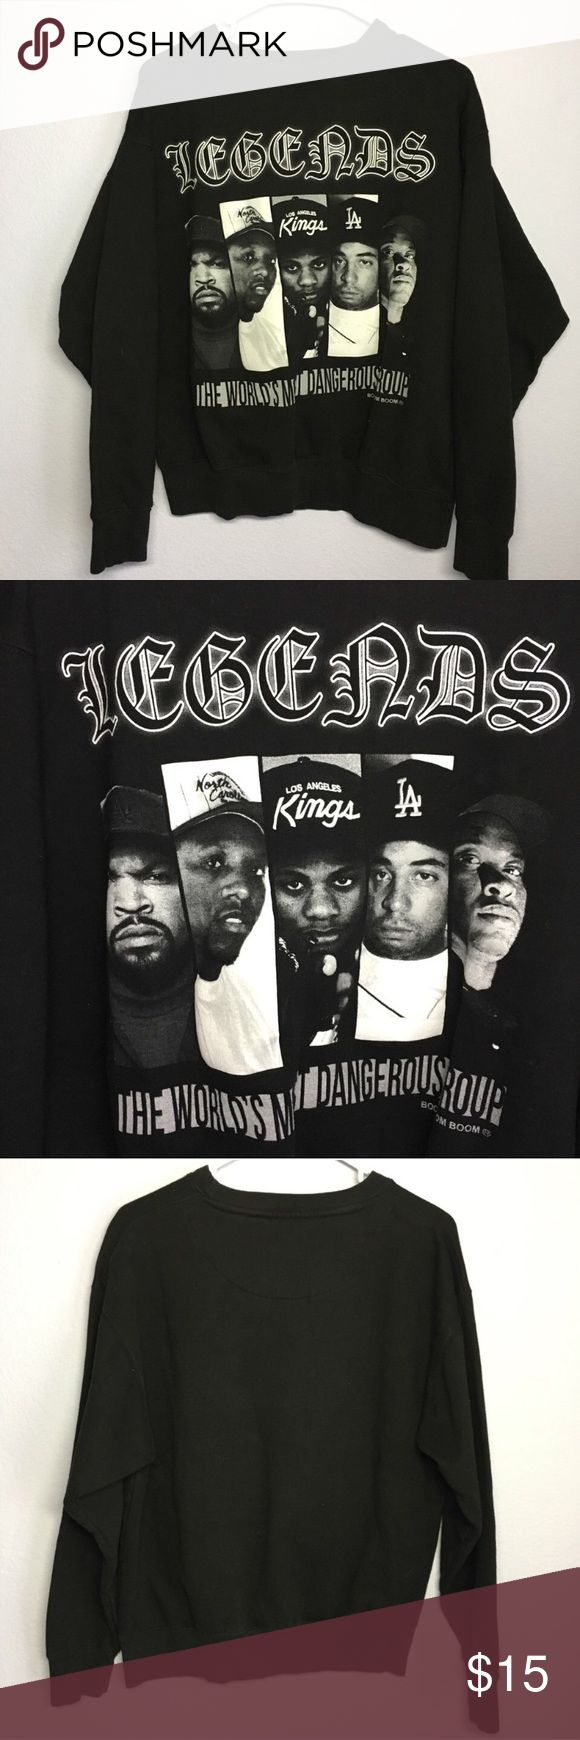 "NWA Legends Crewneck Sweatshirt ""The World's Most Dangerous Rap Group"". Like new, never worn or washed. Medium  #nwa#rap#hiphop#drdre#eazy-e#icecube#la#losangeles#compton Sweaters Crewneck"